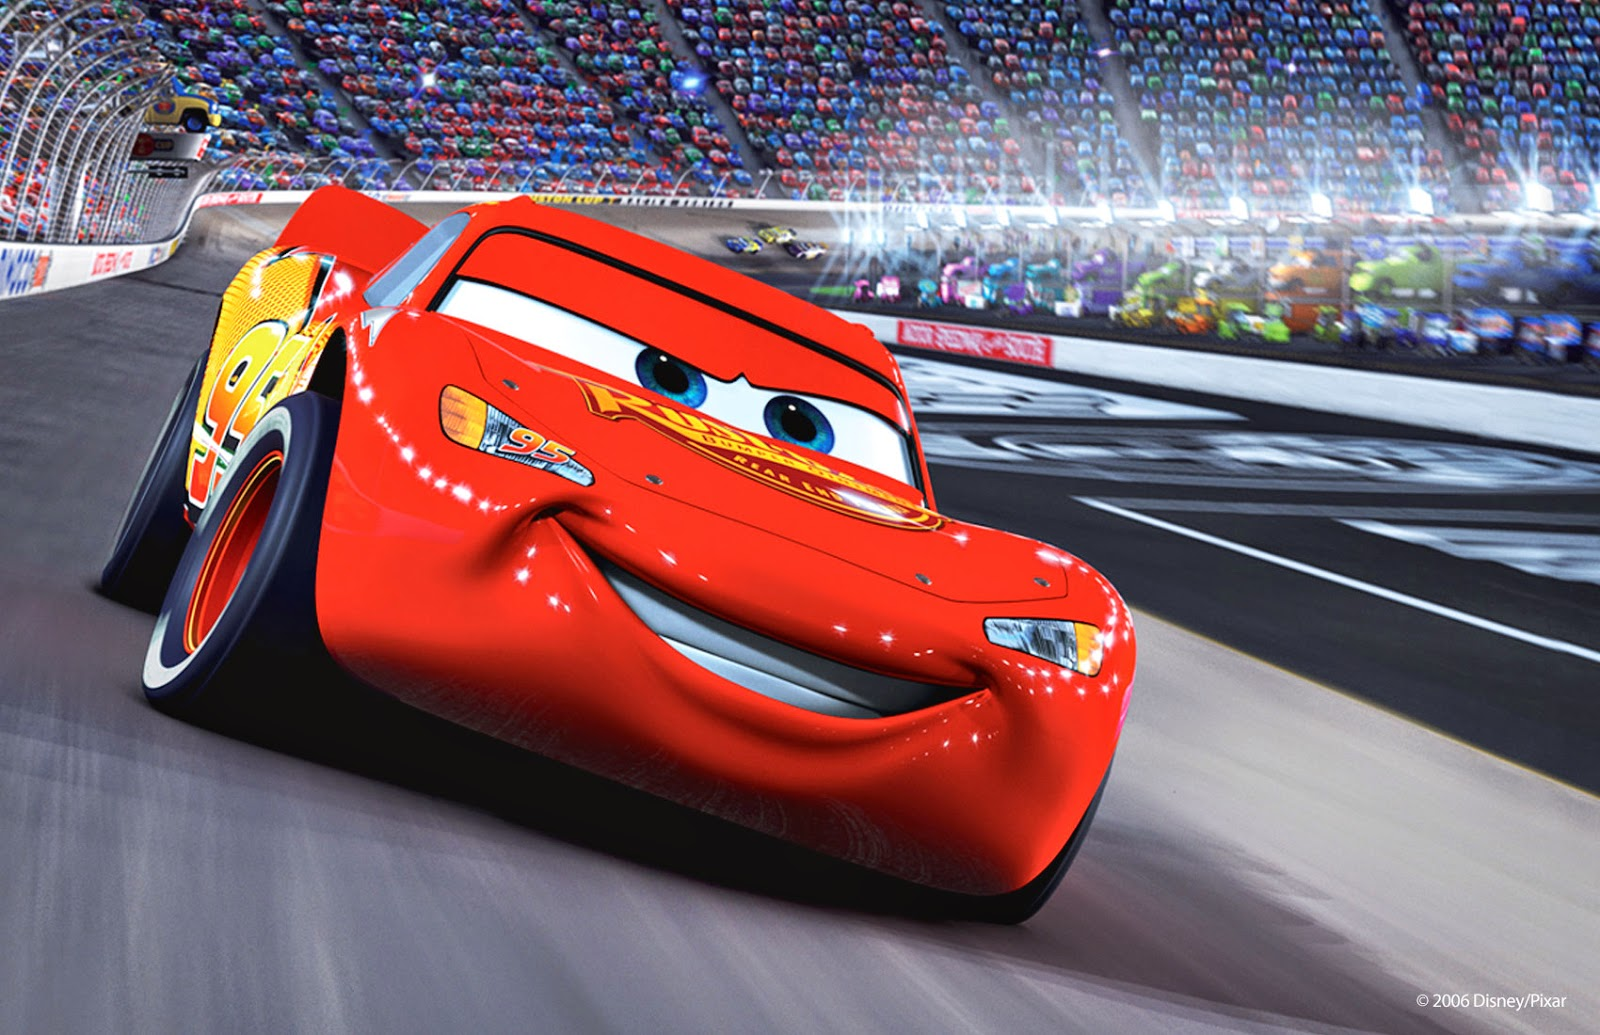 Tuesday cars and cars 2